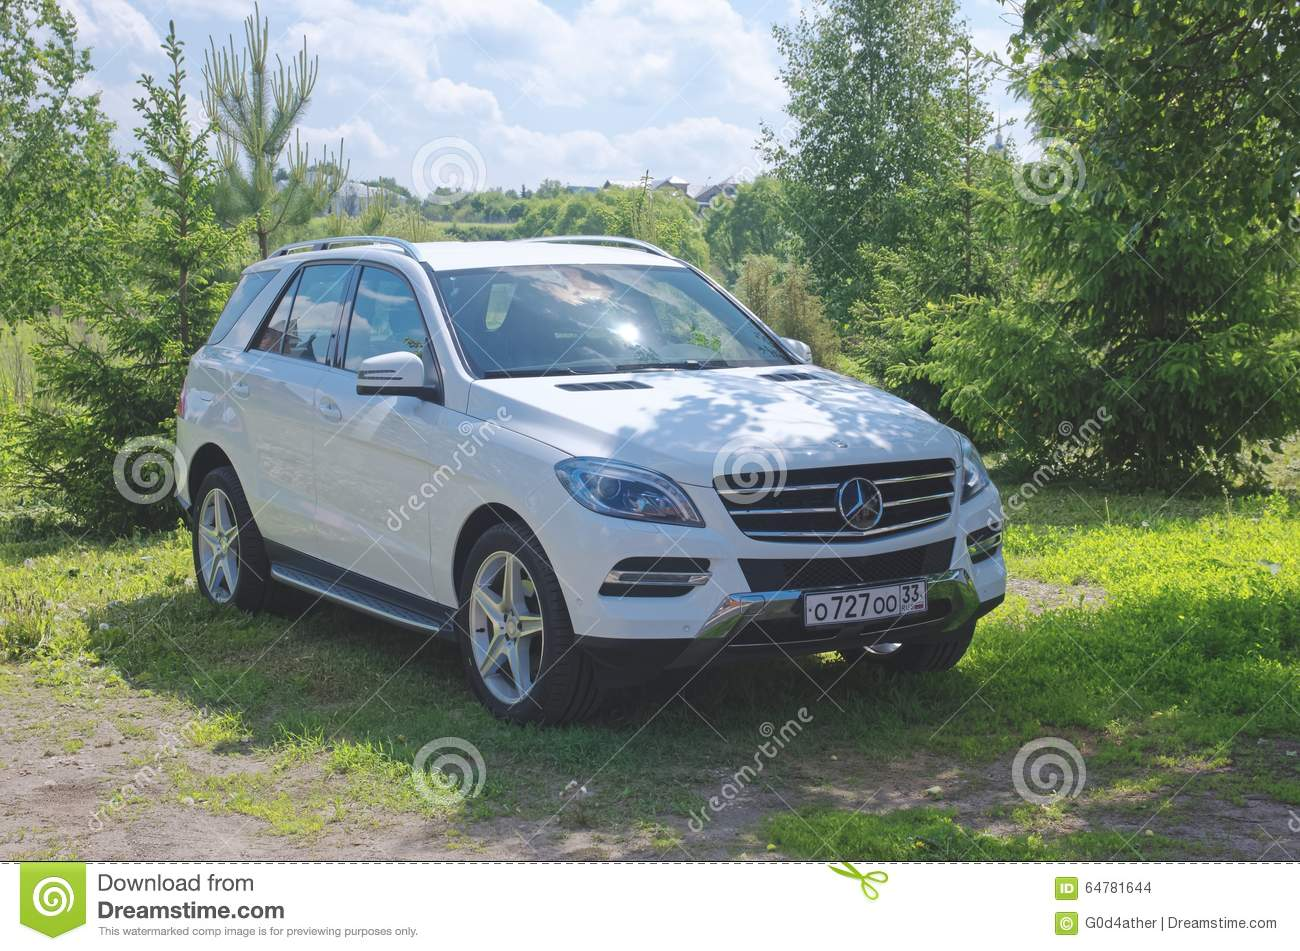 Mercedes benz ml editorial stock image image 64781644 for Mercedes benz stock